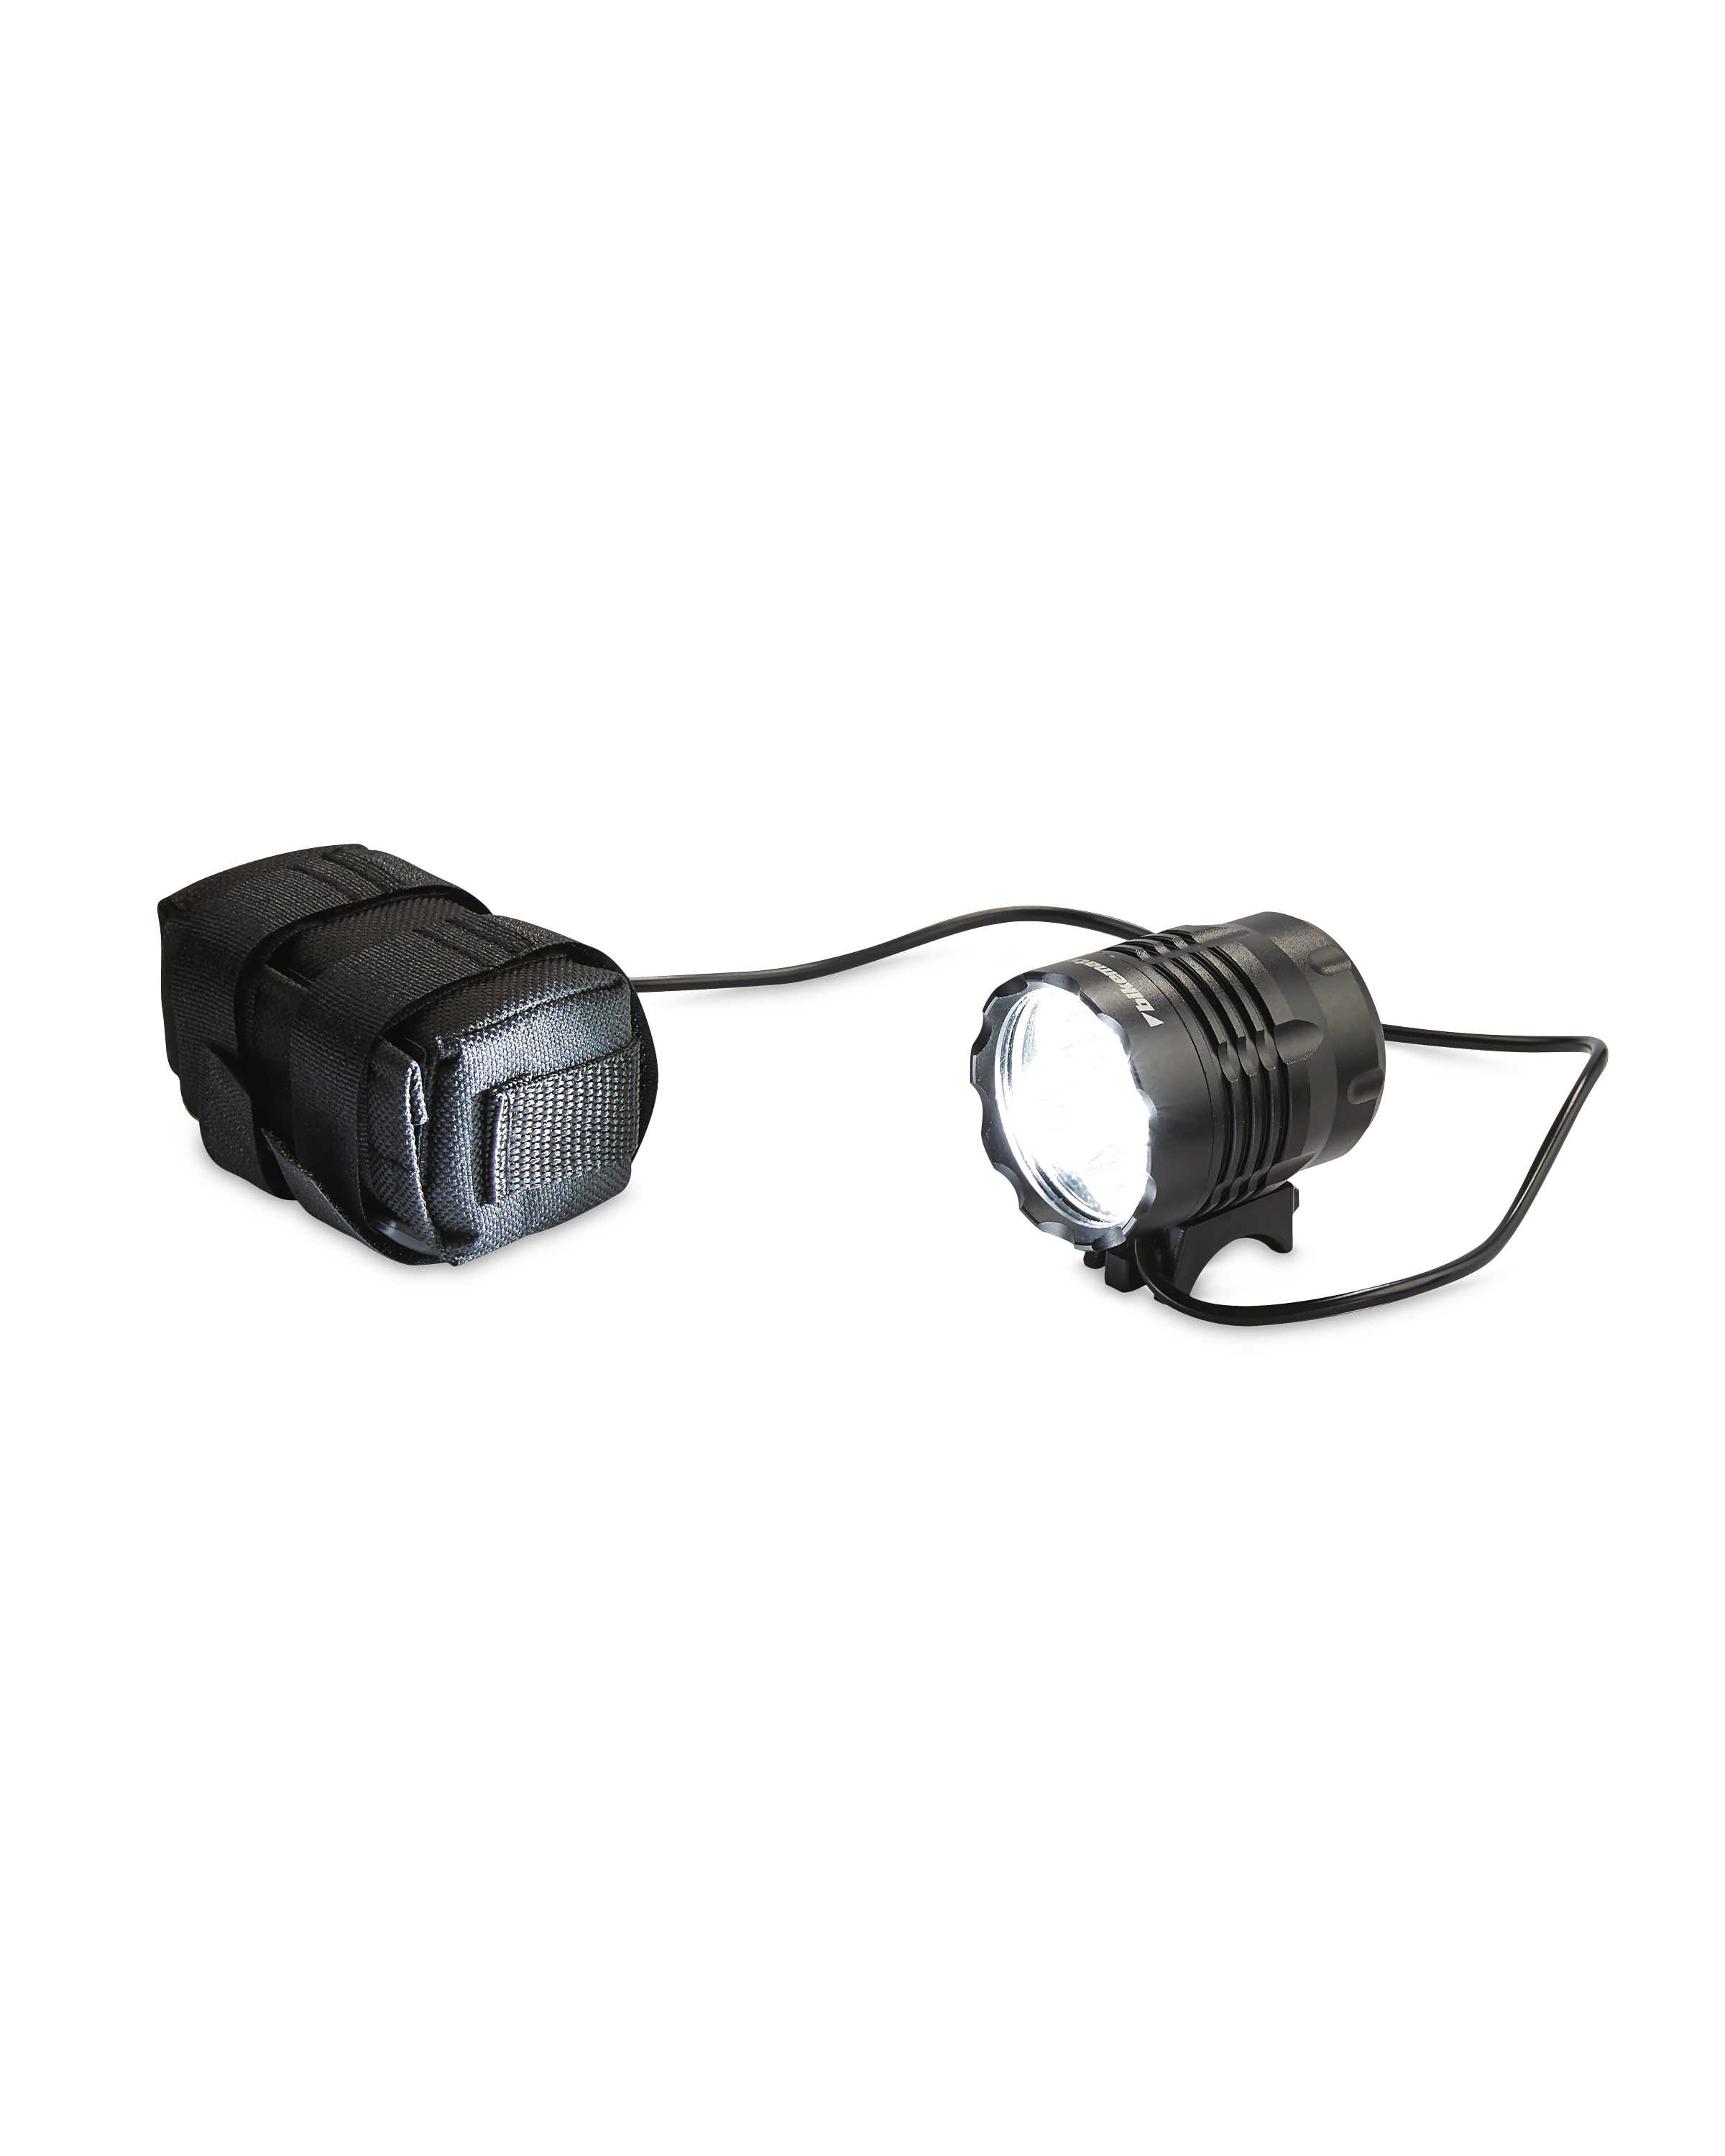 https://cdn.aldi-digital.co.uk/Cree-High-Lumen-Bike-Light-C.jpg?o=1bPkiSh52AM7Sy4V4x8e2Cy5pH4j&V=avVm&p=2&q=50